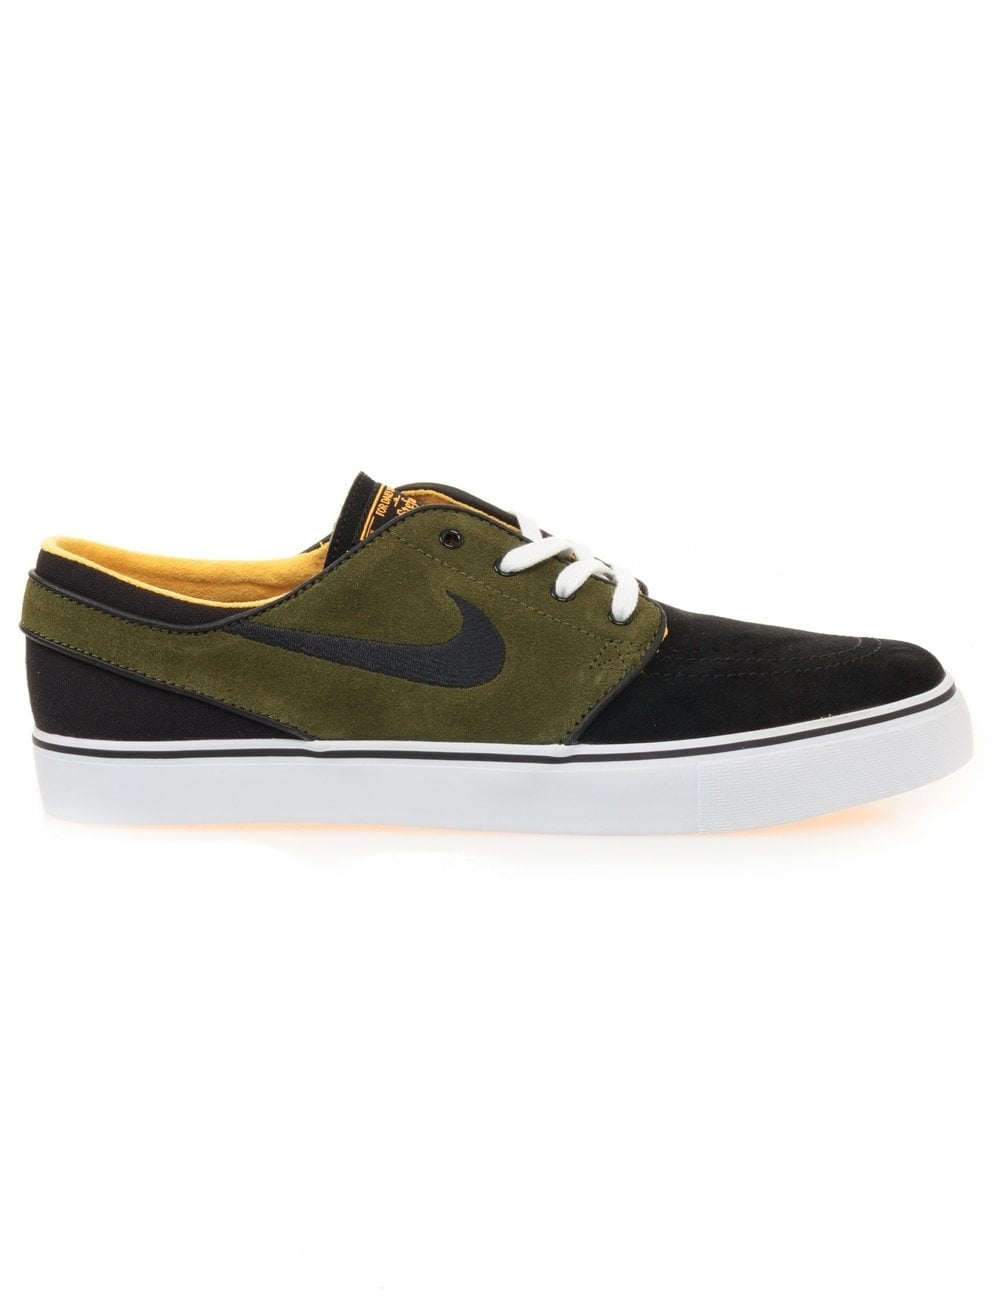 253e15e9008b67 Nike SB Zoom Stefan Janoski - Black Legion Green - Footwear from Fat ...